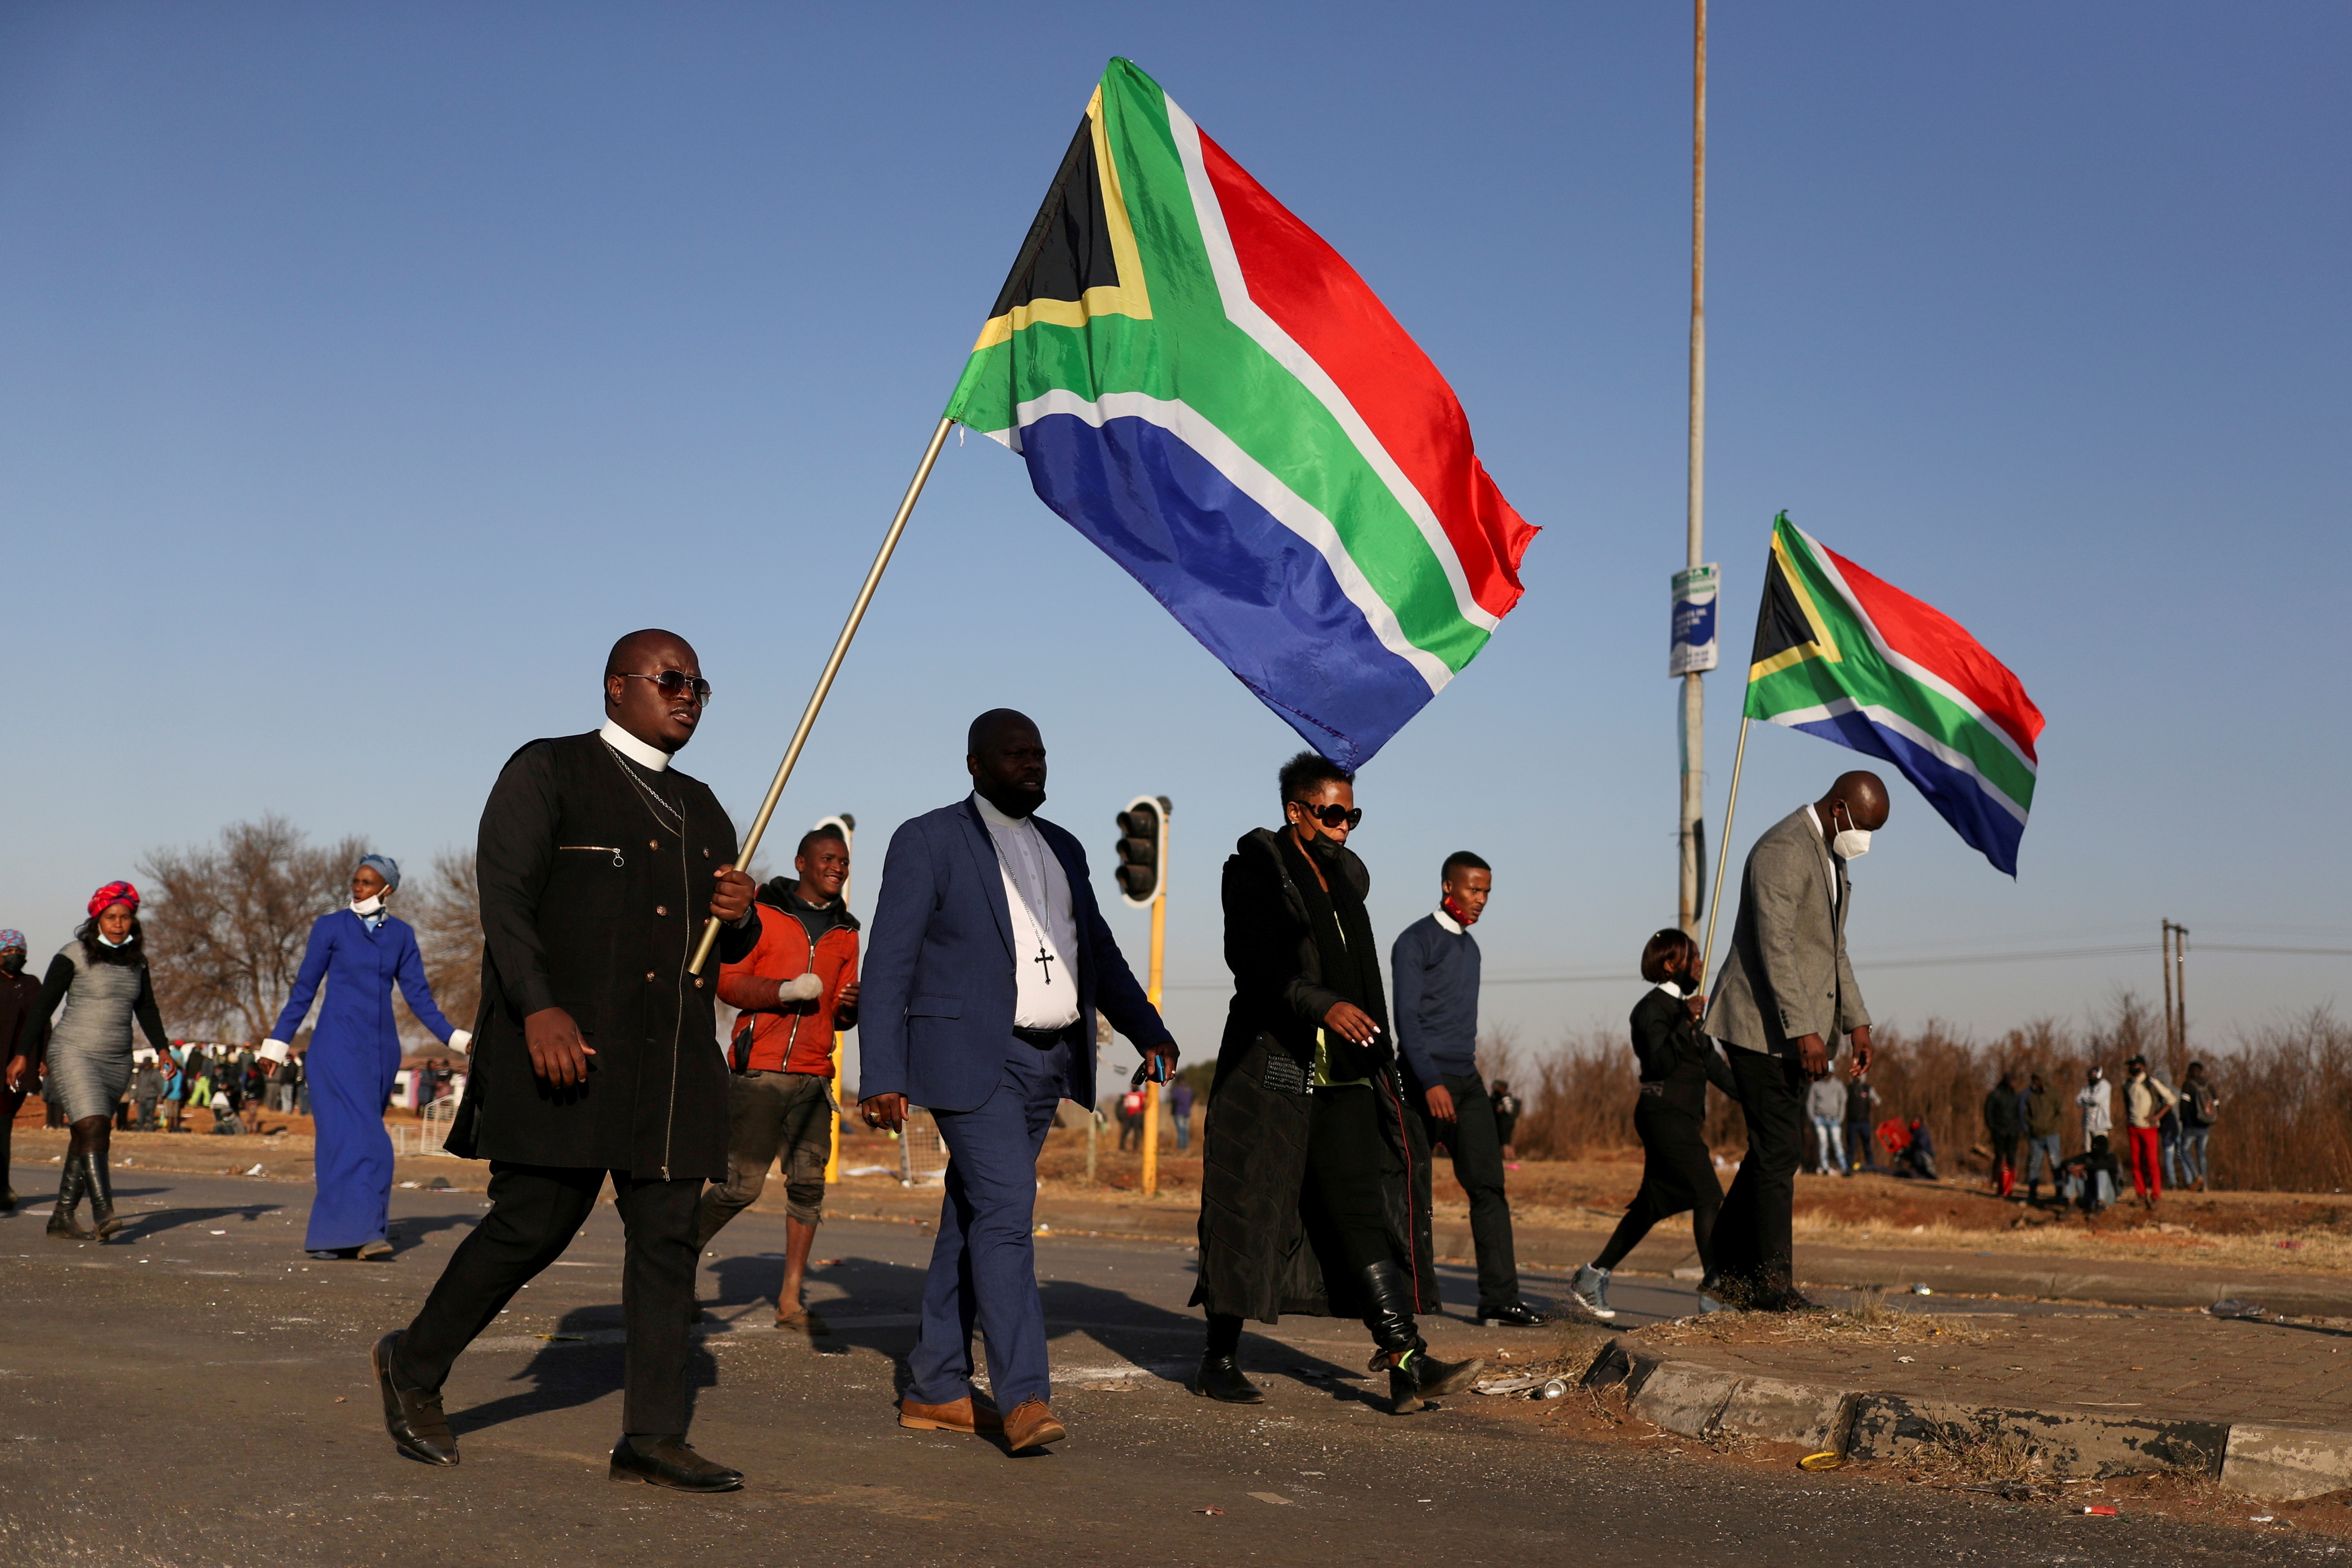 Religious leaders carrying South African flags walk near a looted shopping mall as the country deployed the army to quell unrest linked to the jailing of former South African President Jacob Zuma, in Vosloorus, South Africa, July 14, 2021. REUTERS/Siphiwe Sibeko/File Photo